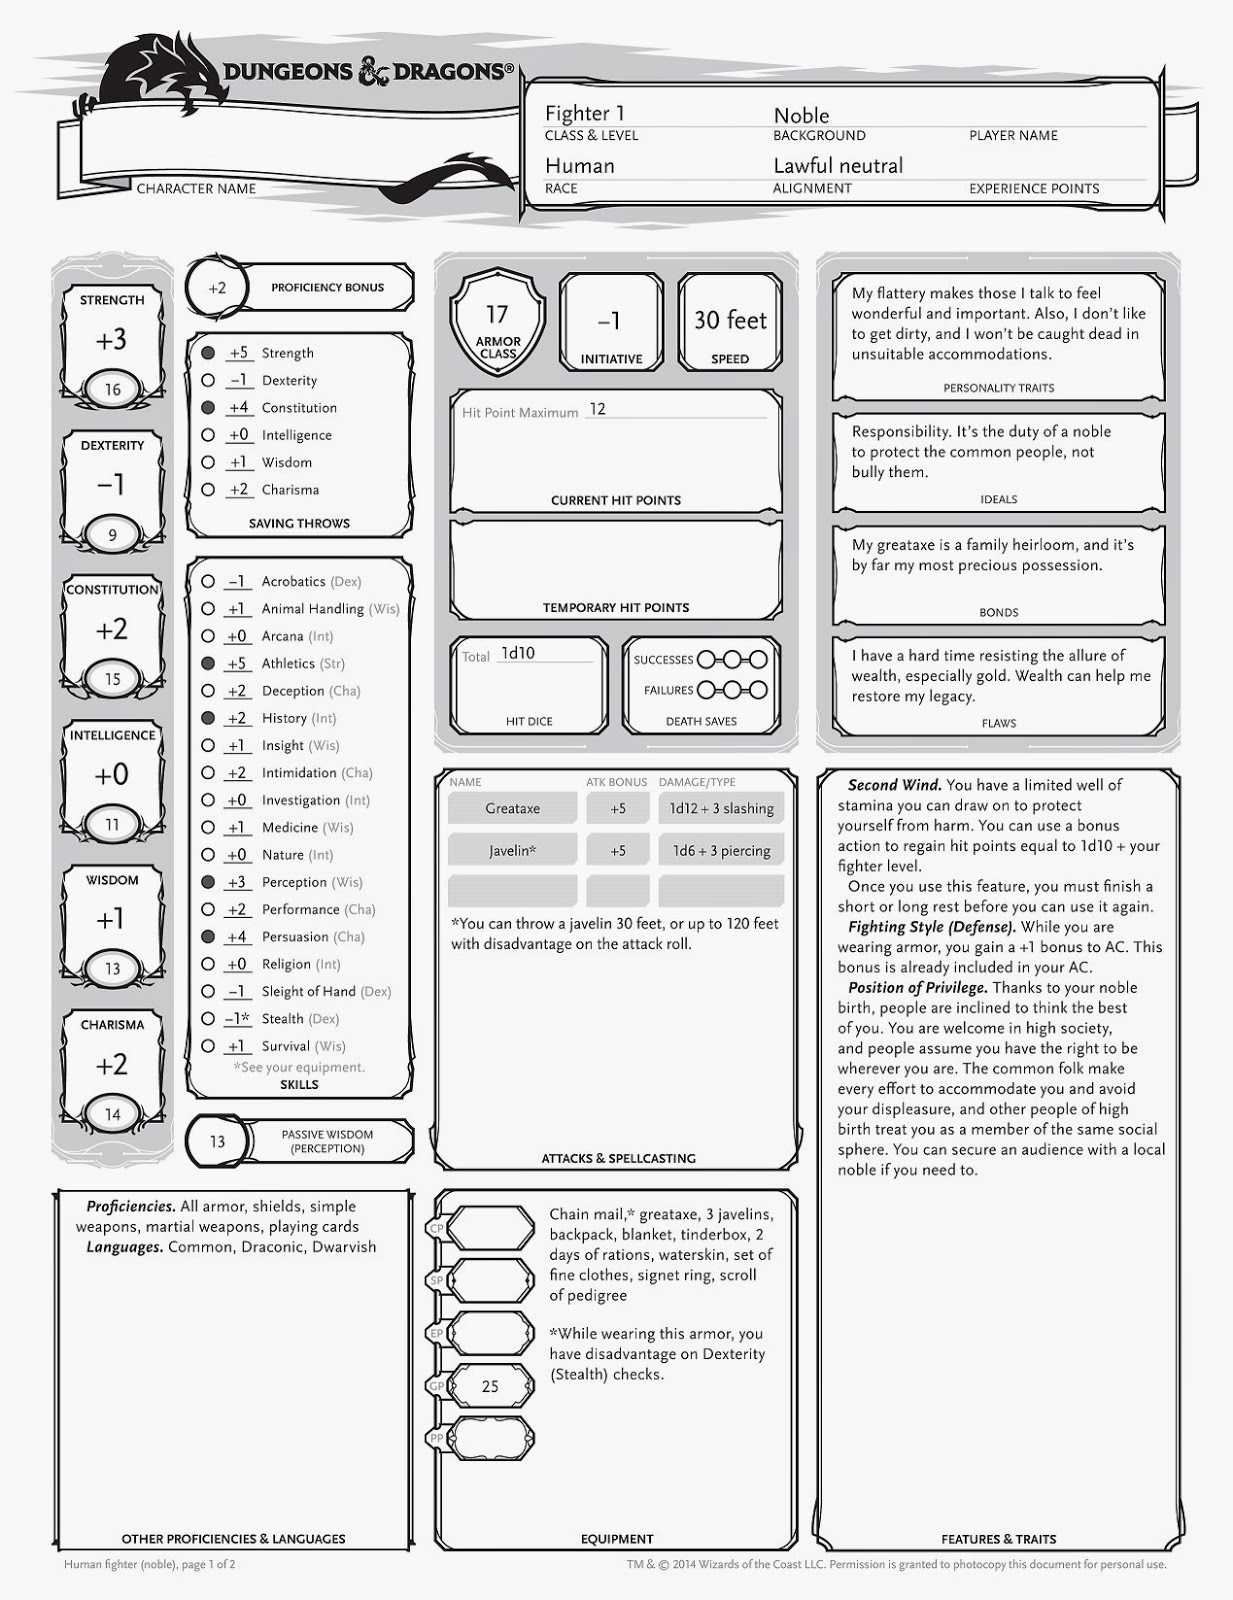 roll20-character-sheets/ReadMe md at master · Roll20/roll20